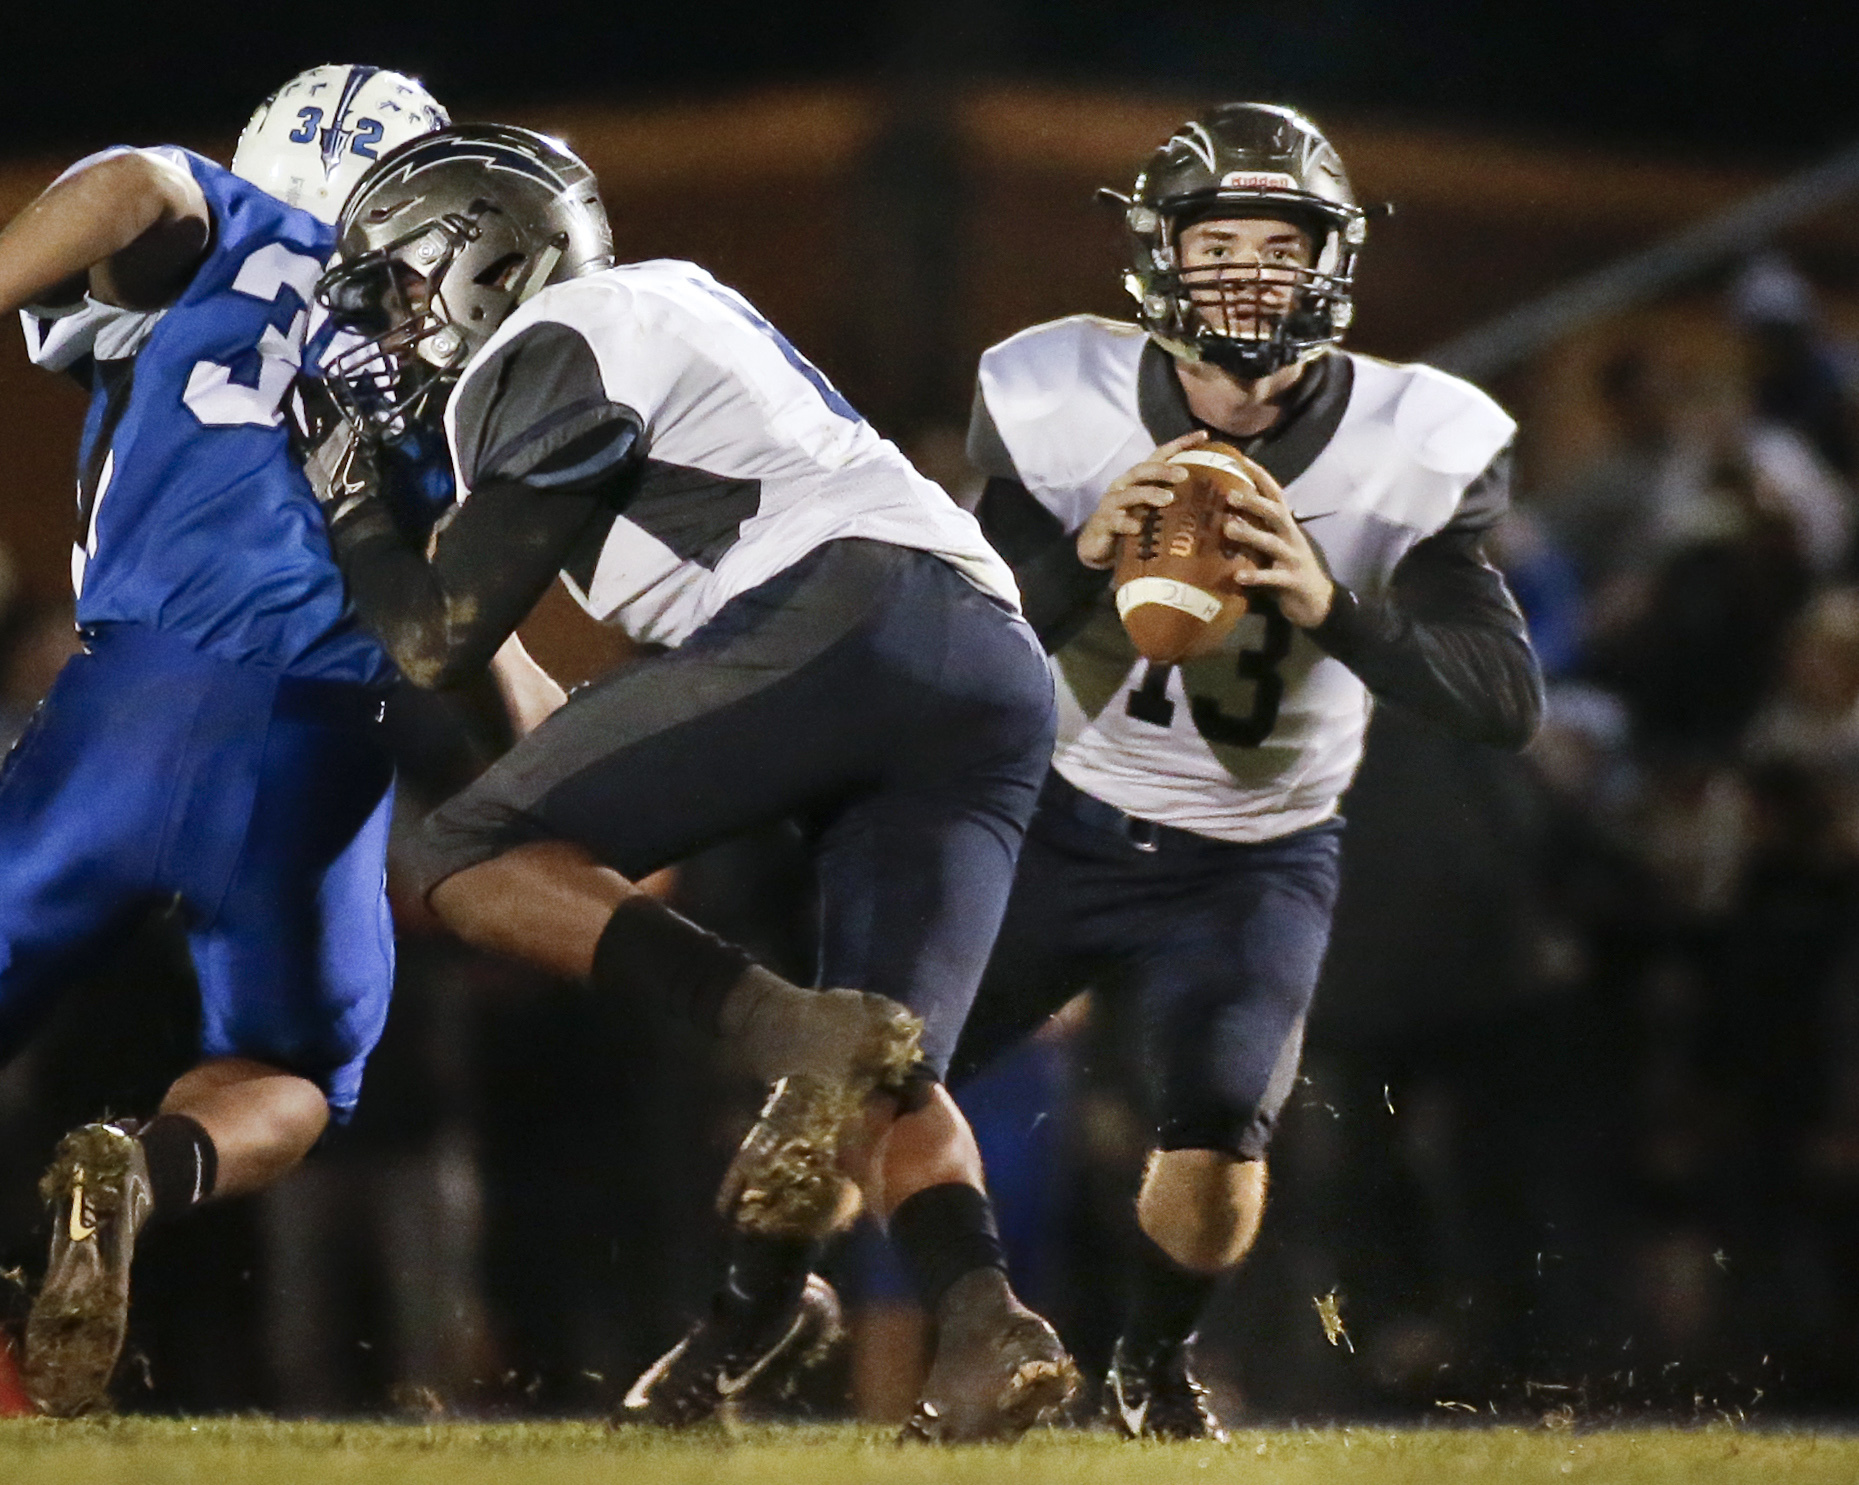 Timber Creek quarterback Devin Leary